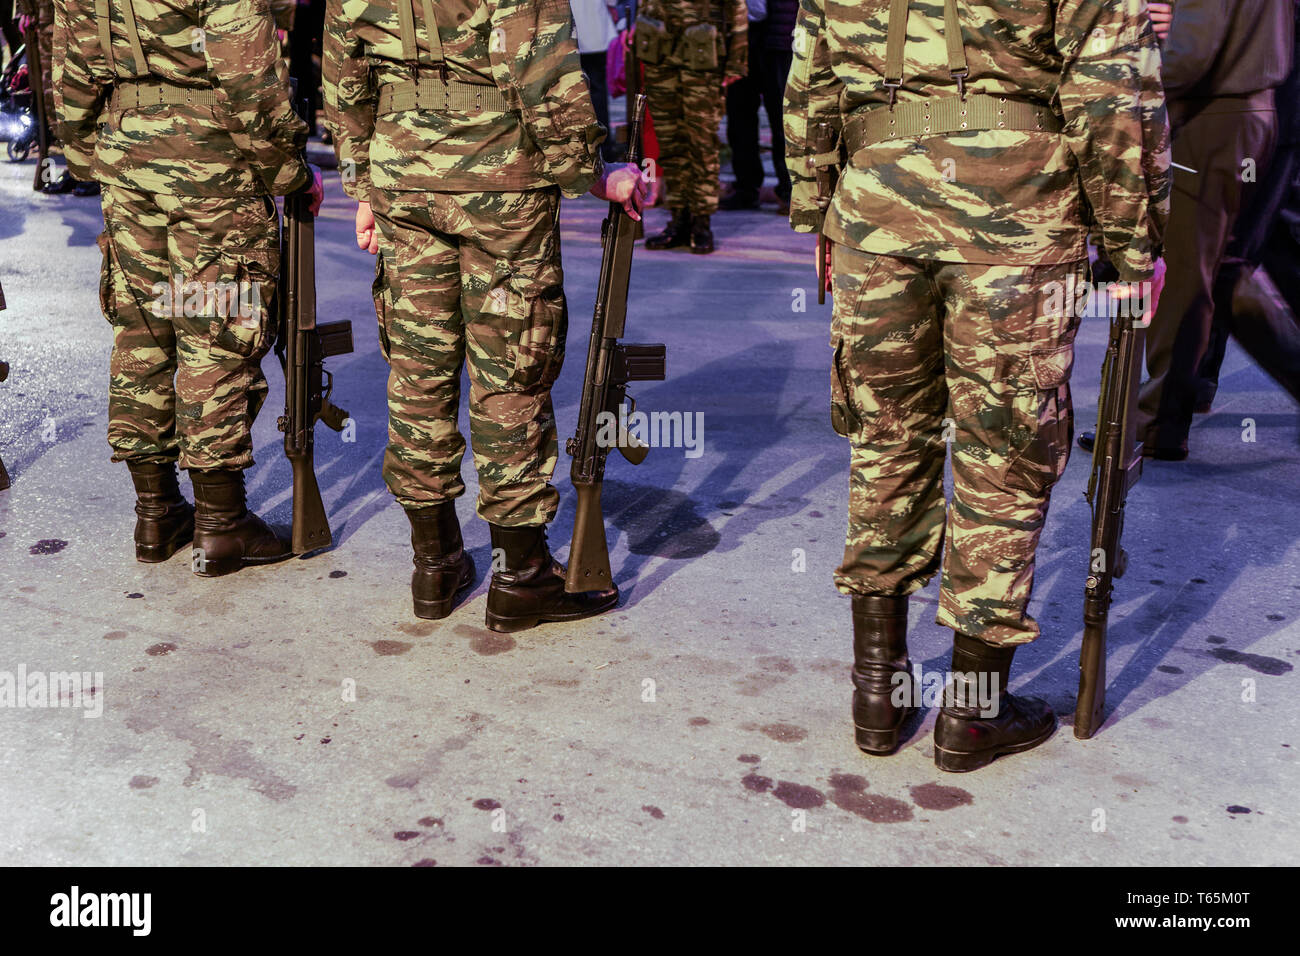 Silhouette of Hellenic Armed forces males standing still. Greek Army soldiers in a Camouflage Pattern combat uniform, holding a G3A4 rifle. - Stock Image